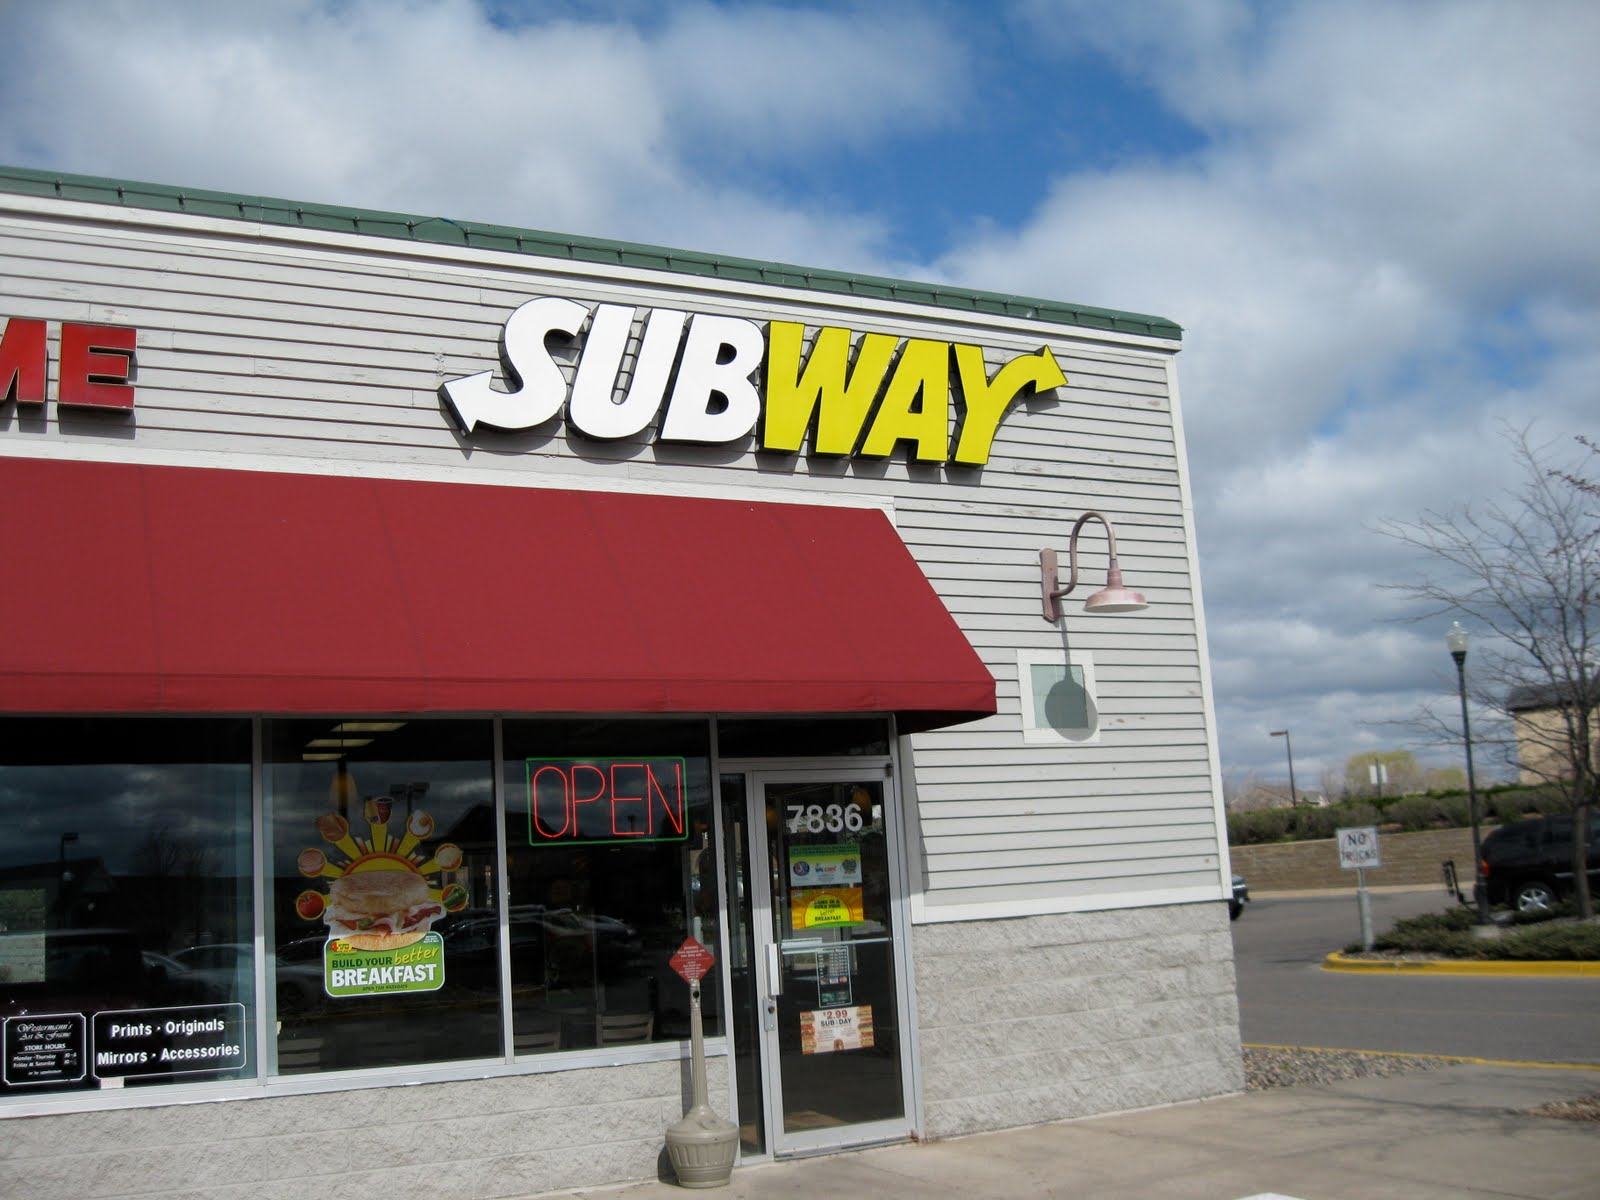 mcdonald vs subway Mcdonald's vs subway nowadays many people eat fast food and there are competitions among the stores the two most popular fast-food restaurants are mcdonald's and subway and they both attract customers in different ways.